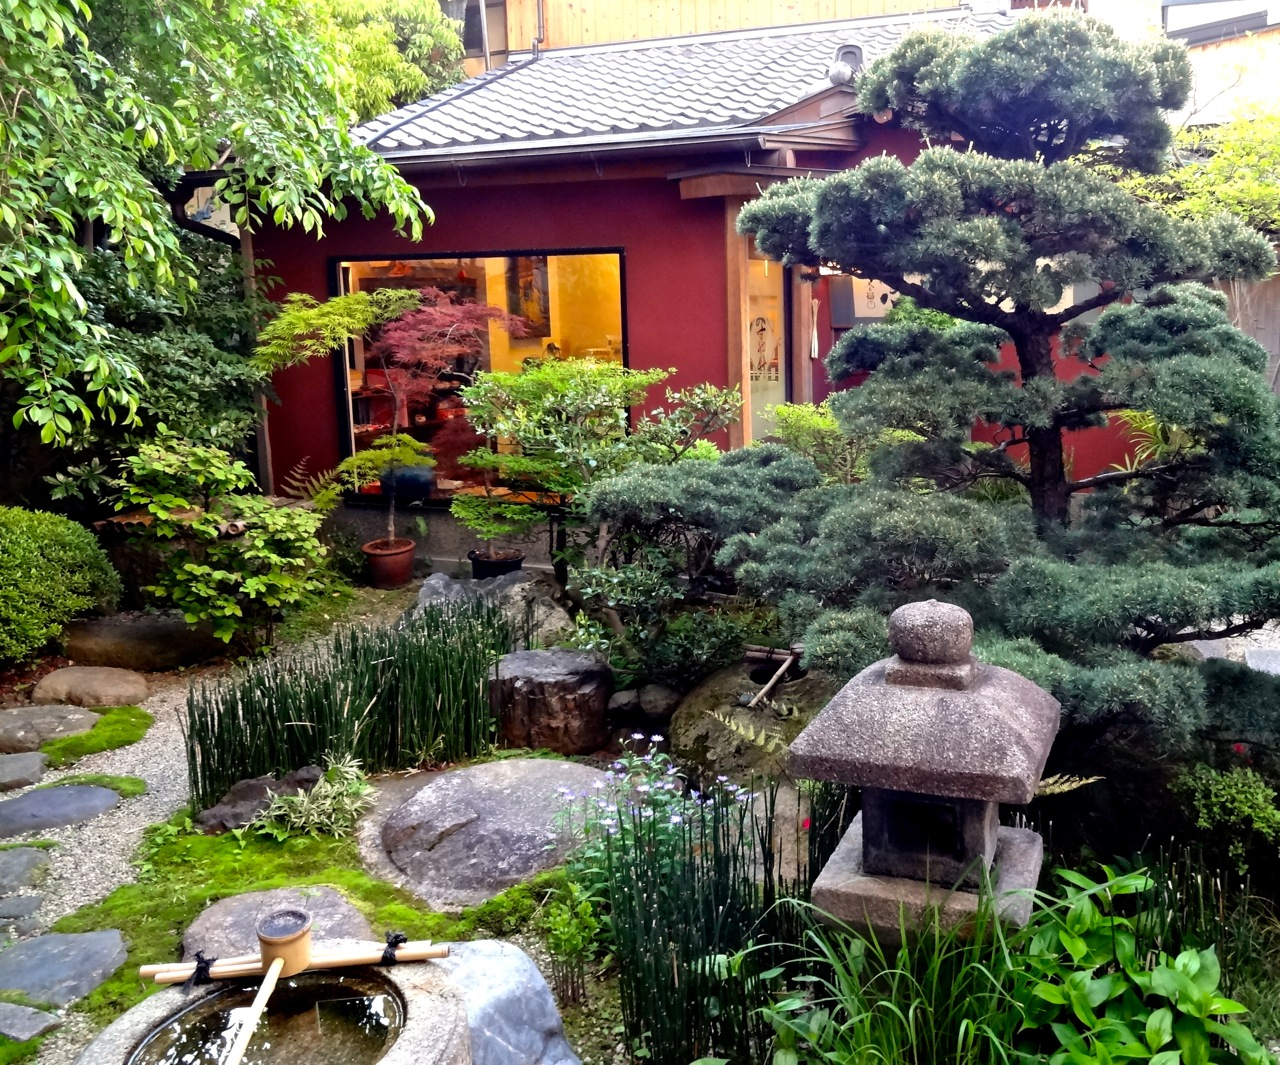 The art of the zen garden travel the world over for Japanese koi pond garden